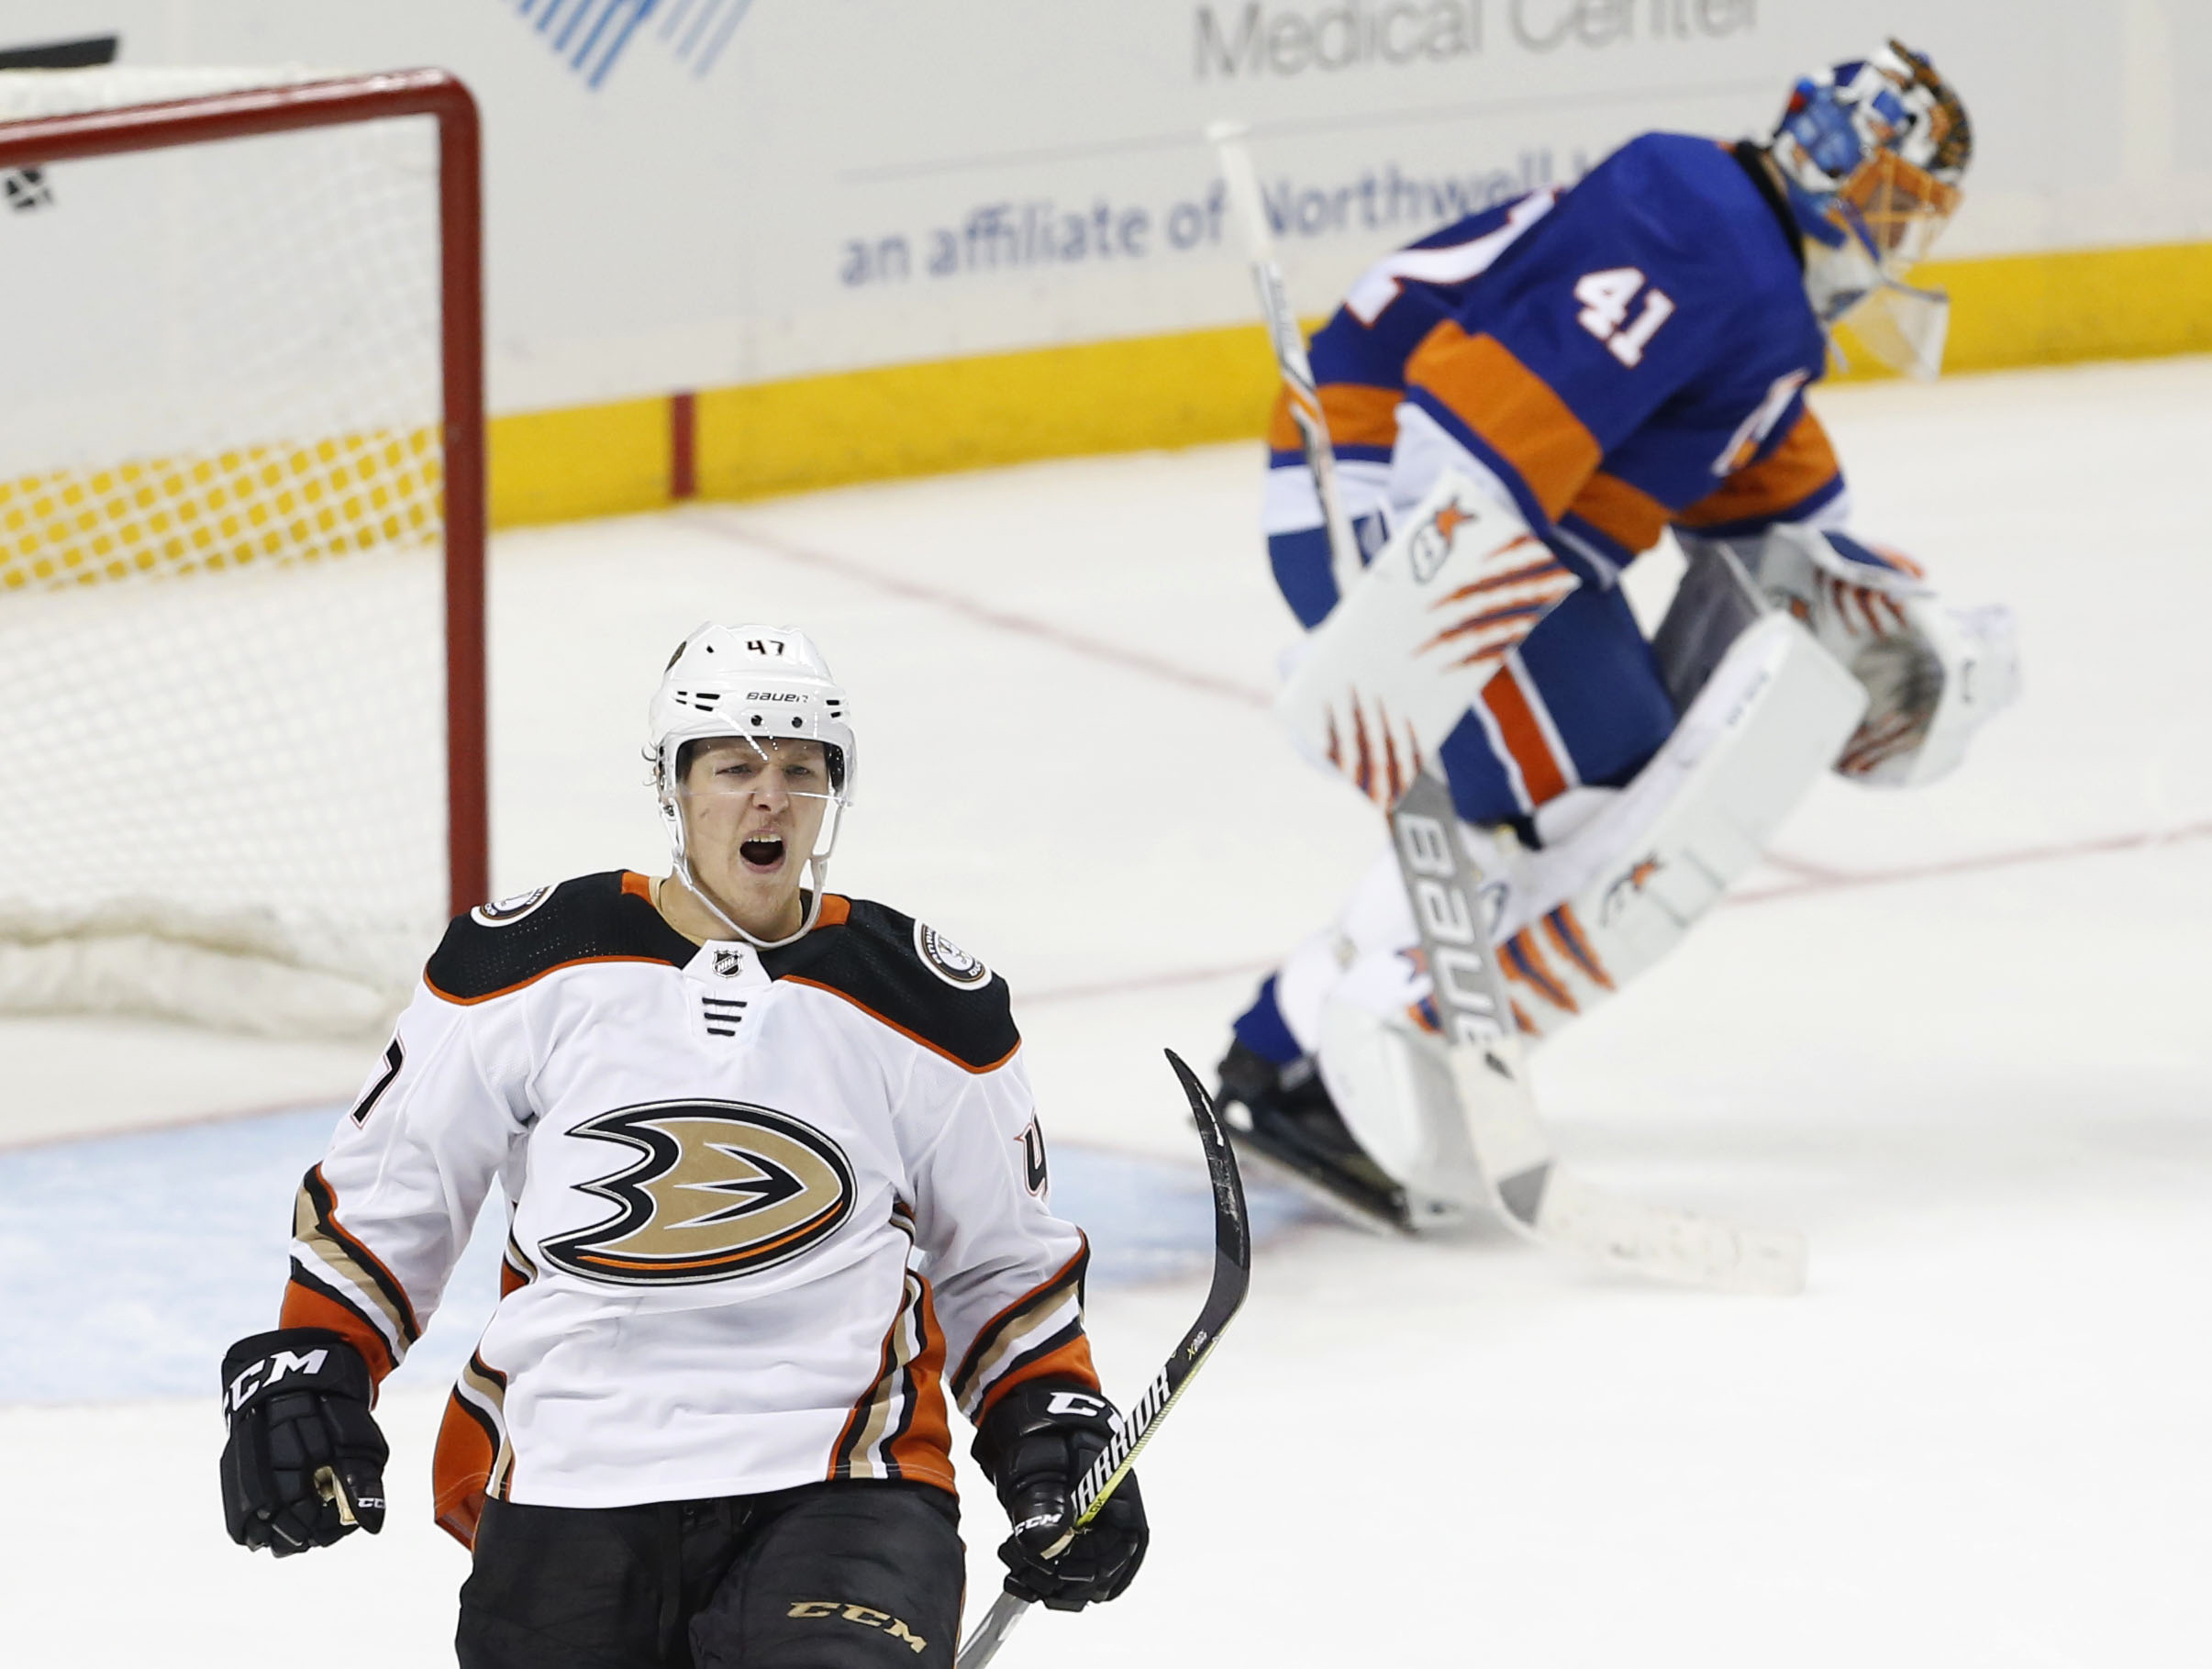 Isles Insights: Bailey and Tavares' Six Combined Points Not Enough in Loss to Ducks